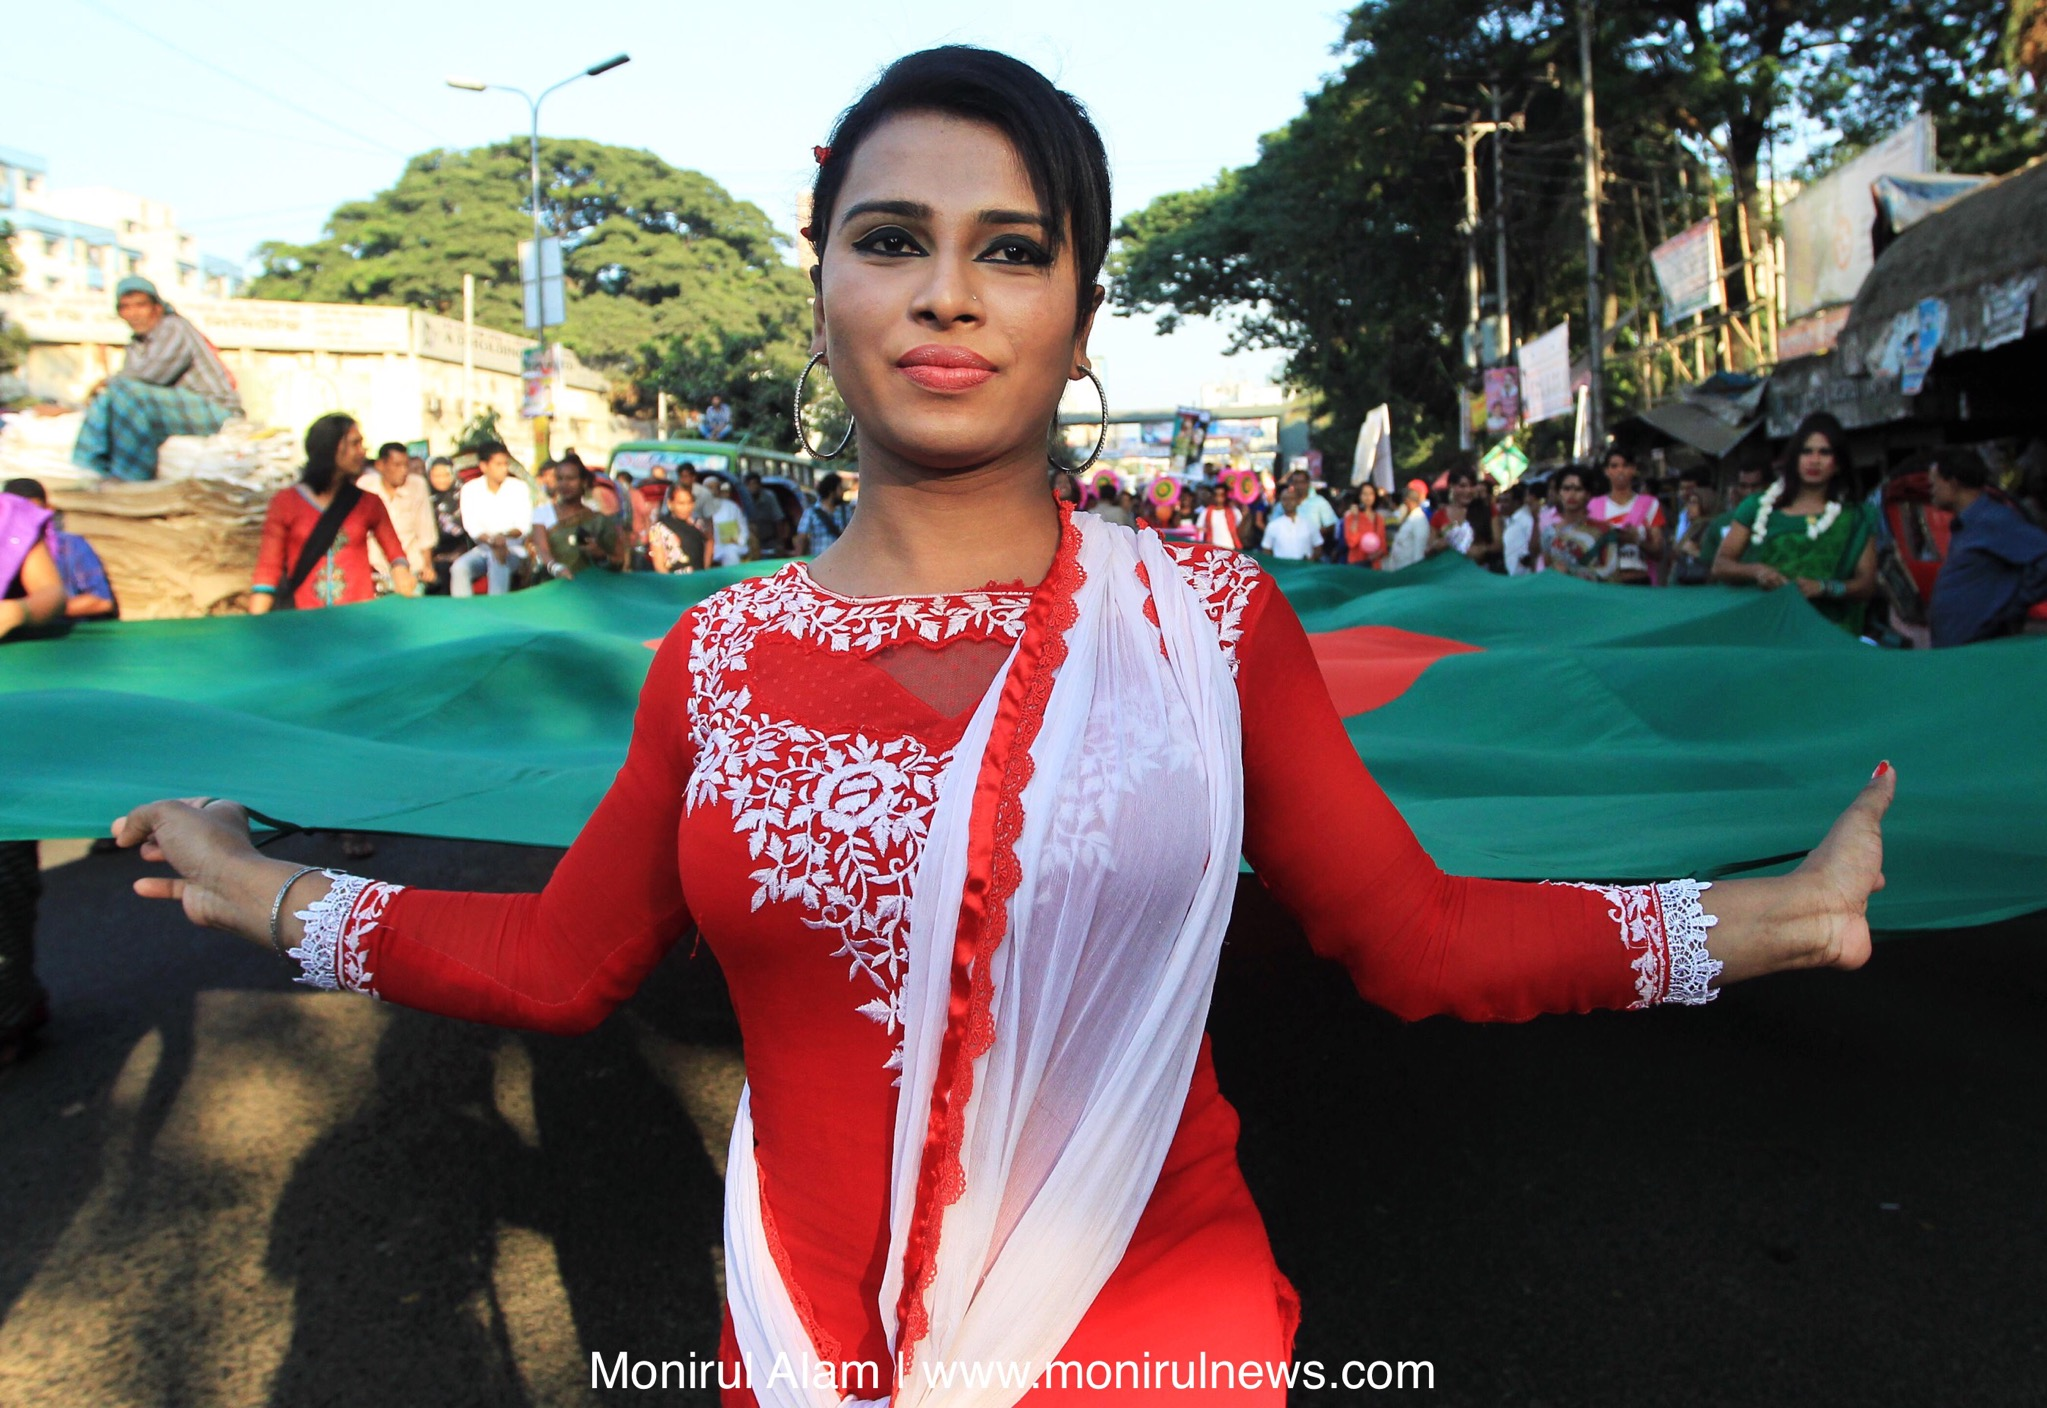 Hijra pride day in banglades monirul alam a supporter of the bangladeshi transgender community takes part in the first transgender pride march or hijra pride day in dhaka bangladesh thecheapjerseys Gallery